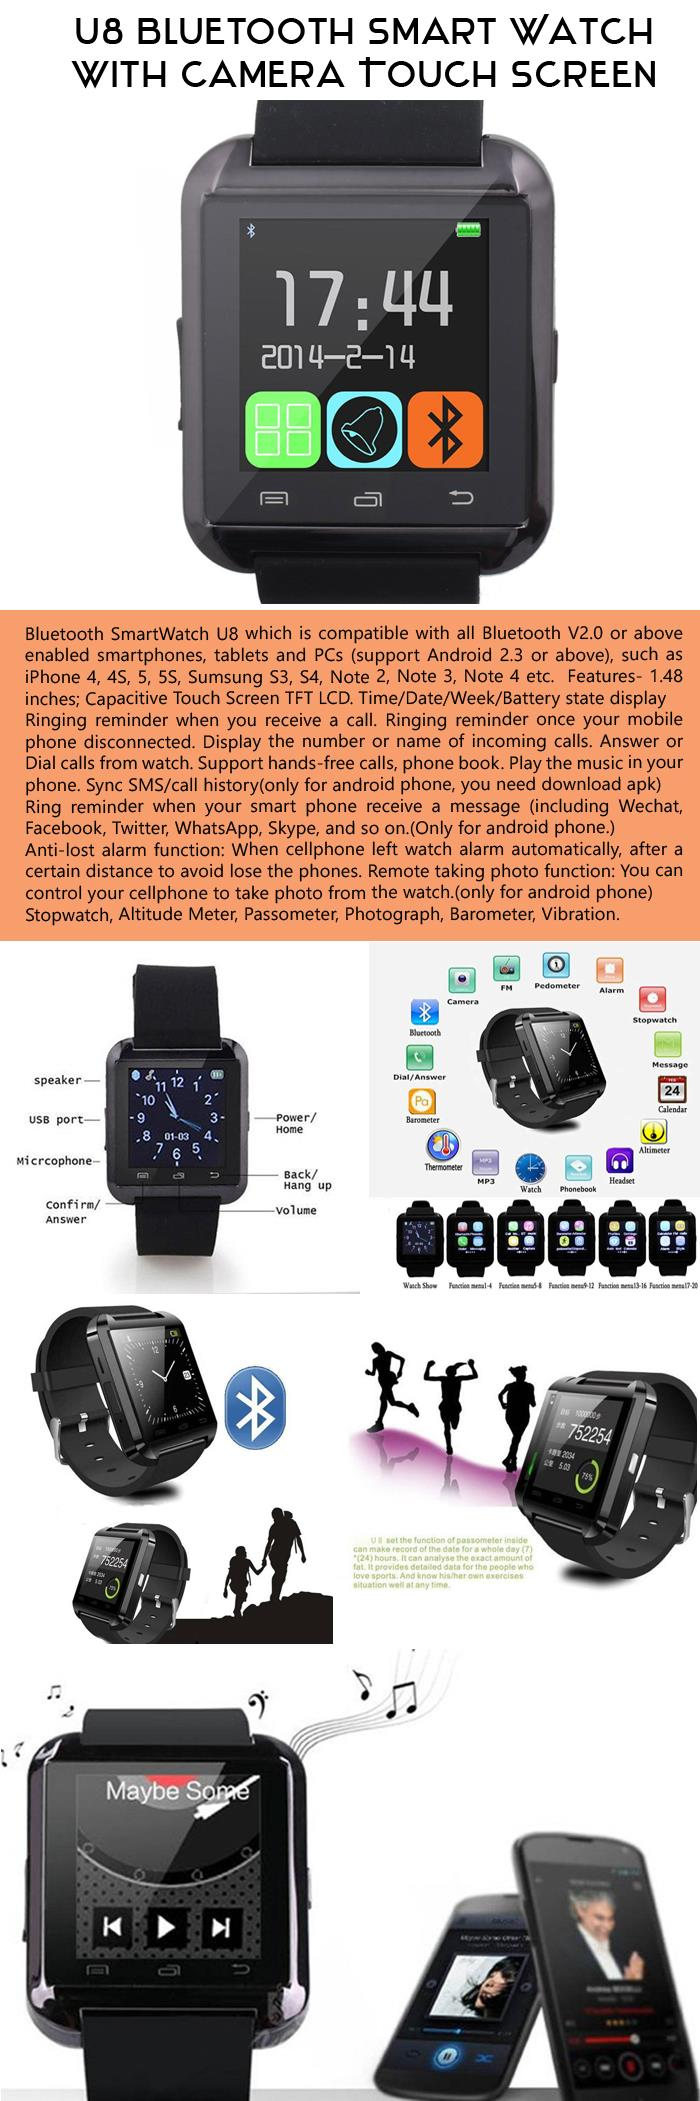 U8 Bluetooth Smart Watch with Camera Touch Screen